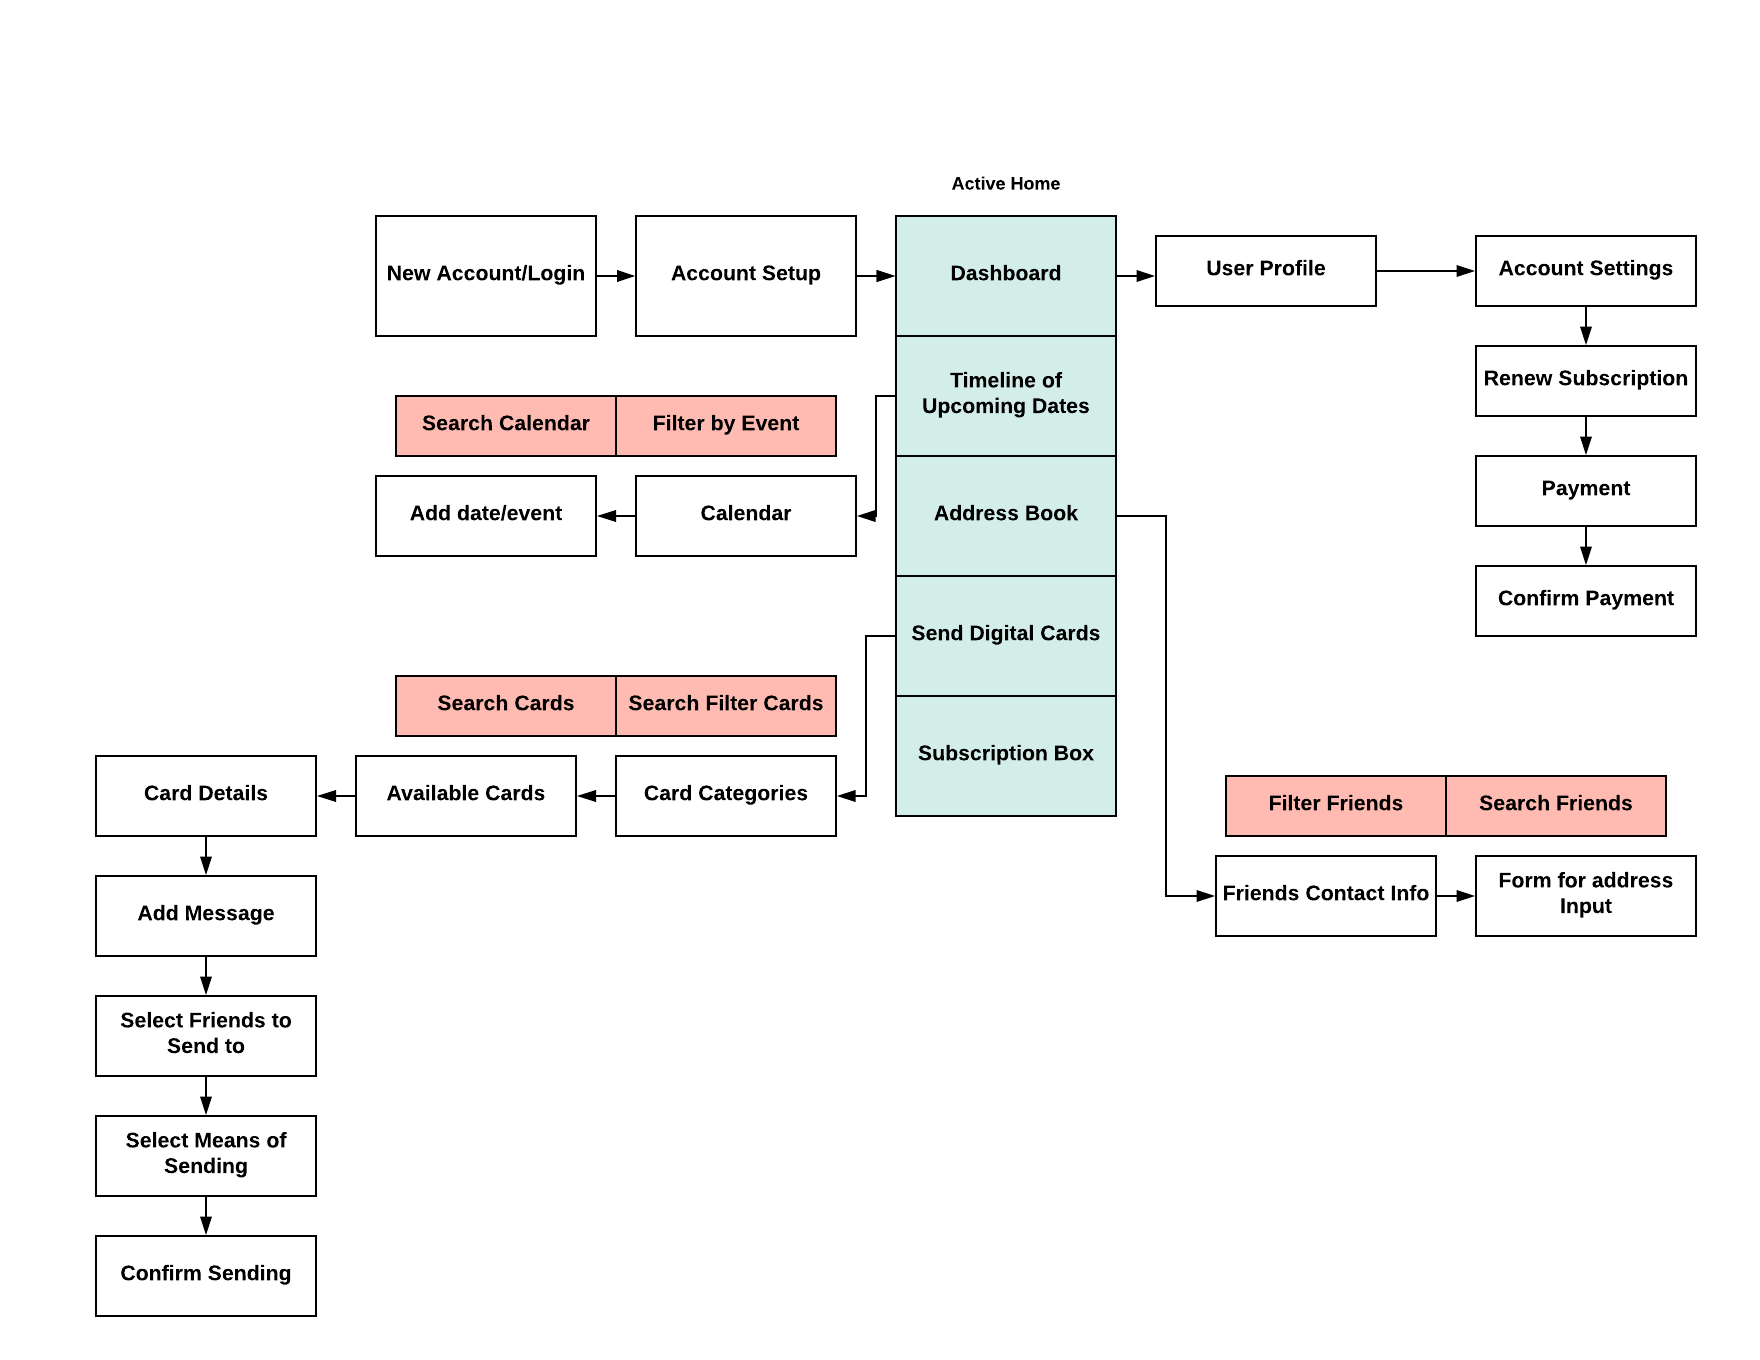 Blank Diagram - Page 1.png